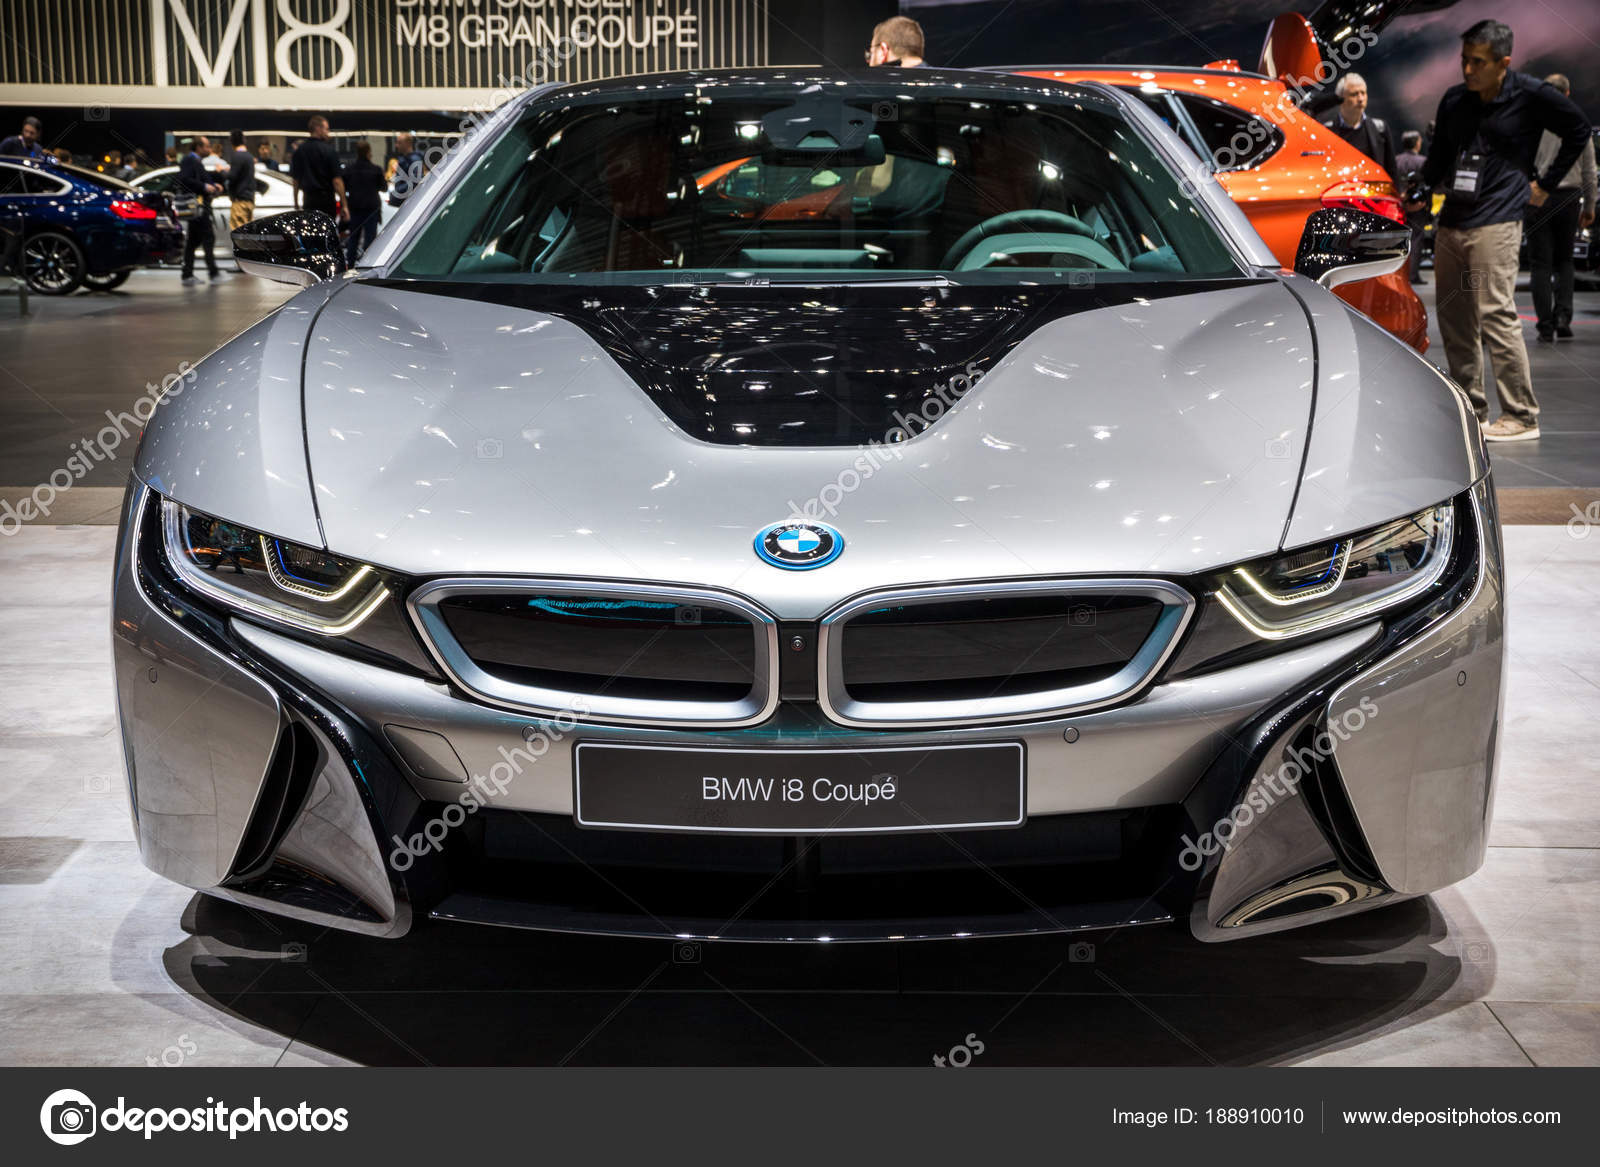 Bmw I8 Coupe Sports Car Stock Editorial Photo C Foto Vdw 188910010